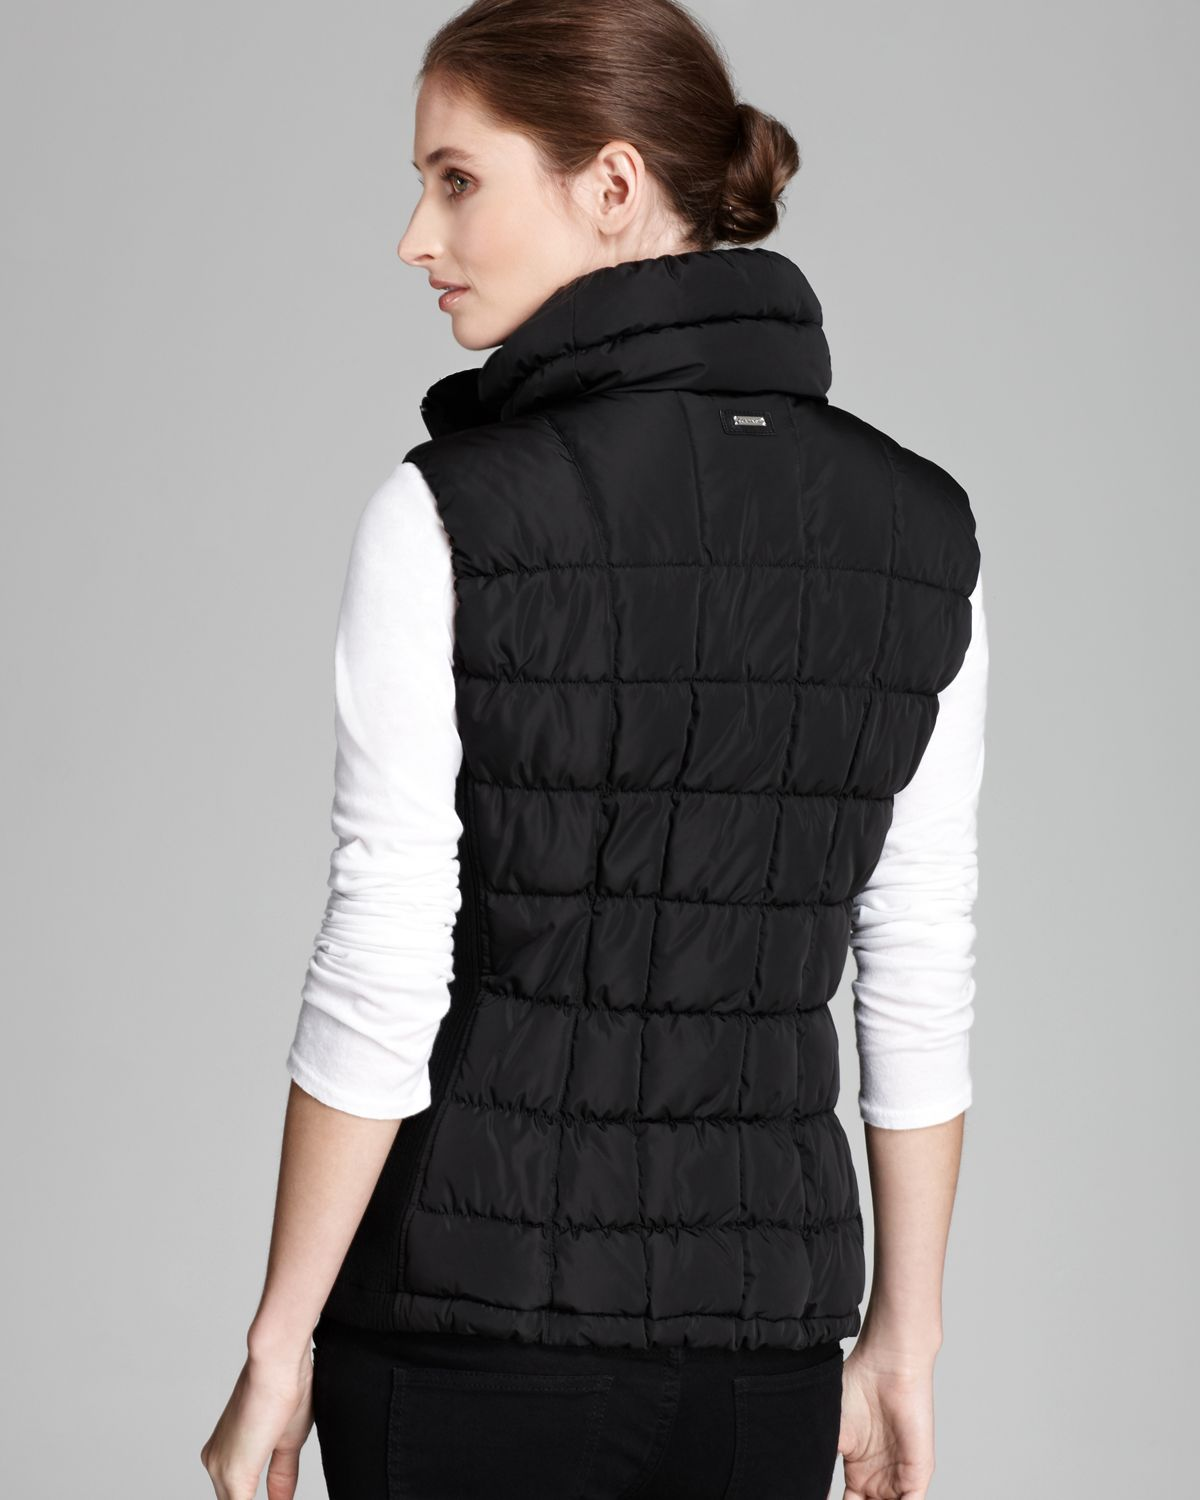 The next generation of packable puffer jacket vests is here. Super light and warm, this plus size vest has topstitching and quilted vertical side channels.